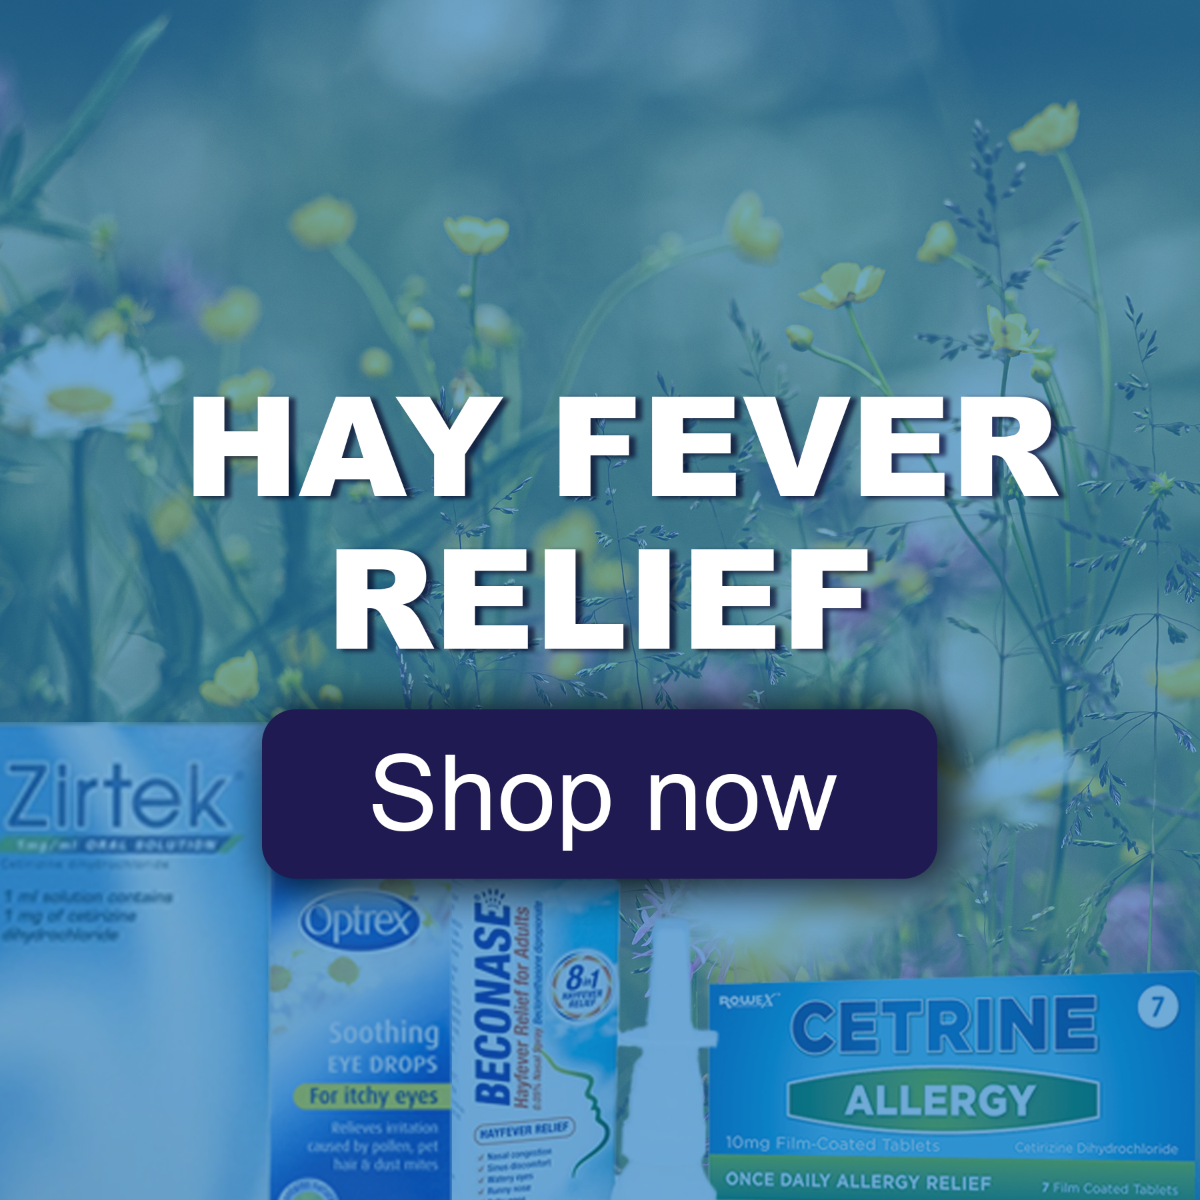 Hay fever square